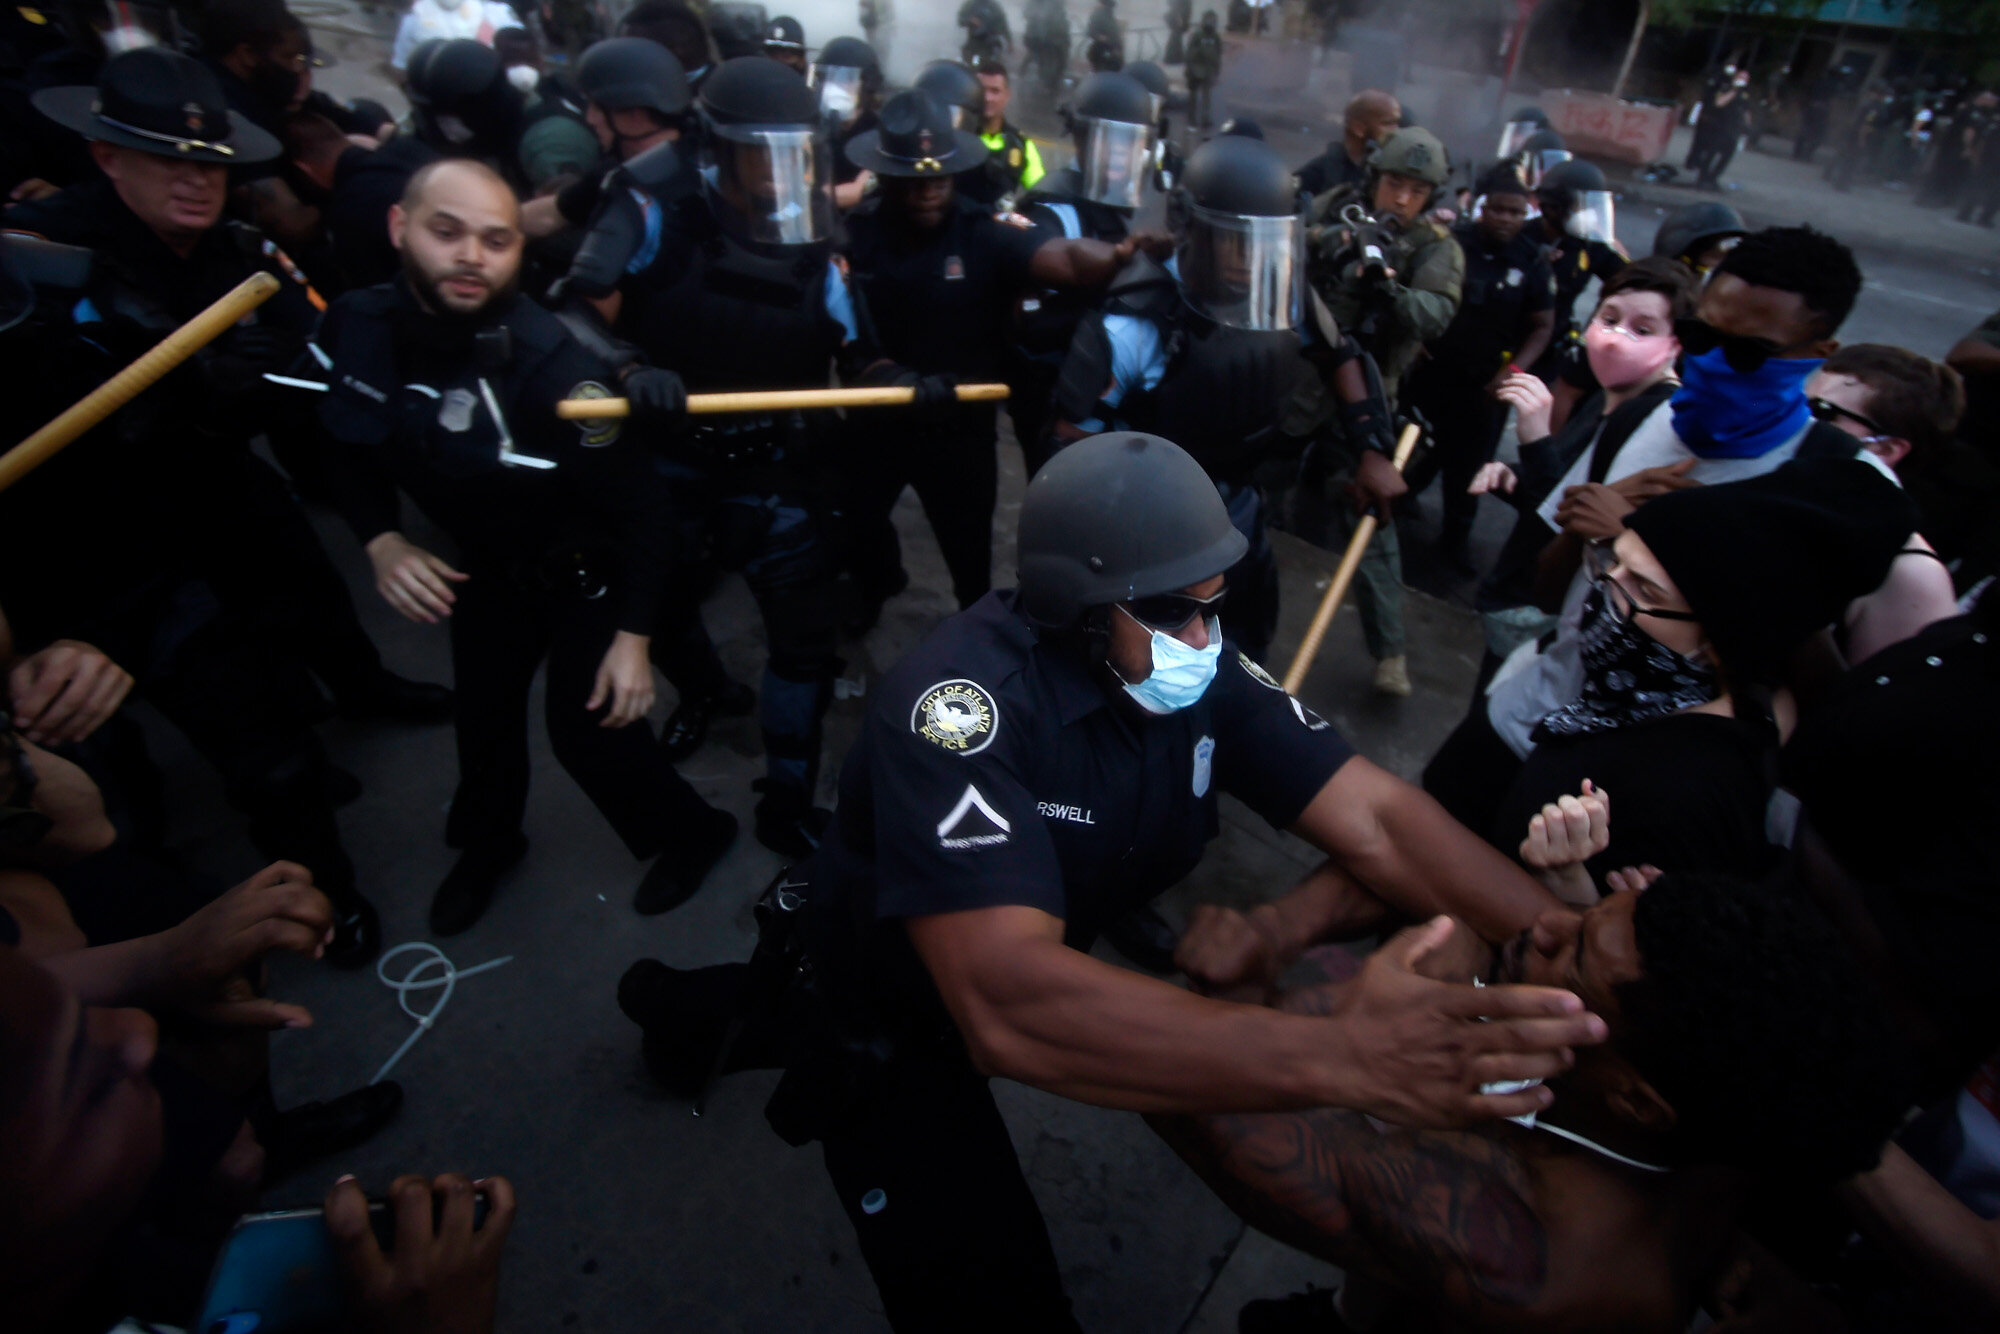 Police officers and protesters clash in Atlanta on May 29, 2020, during a protest in response to George Floyd's death in police custody in Minneapolis. Floyd, a Black man, died after a white police officer pressed a knee into his neck for several minutes even after he stopped moving and pleading for air. (AP Photo/Mike Stewart)